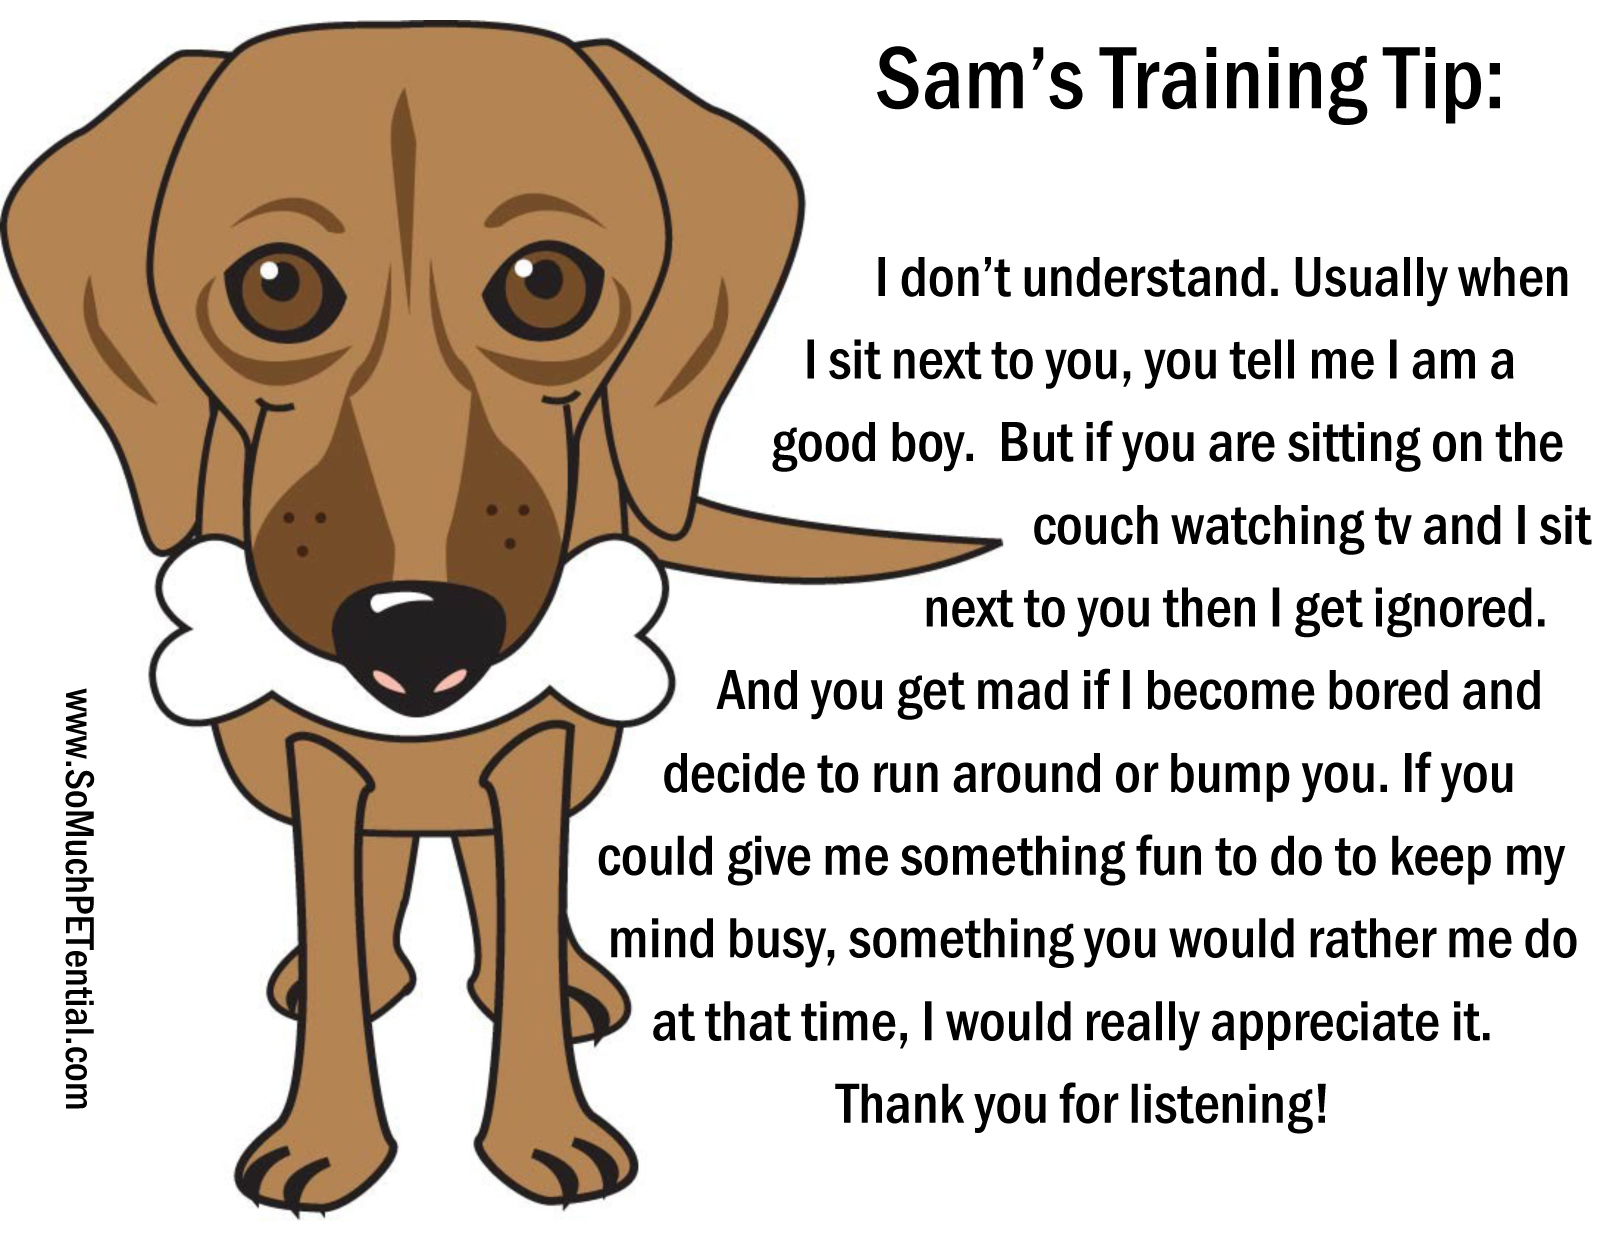 A Dog Training Tip From Sam